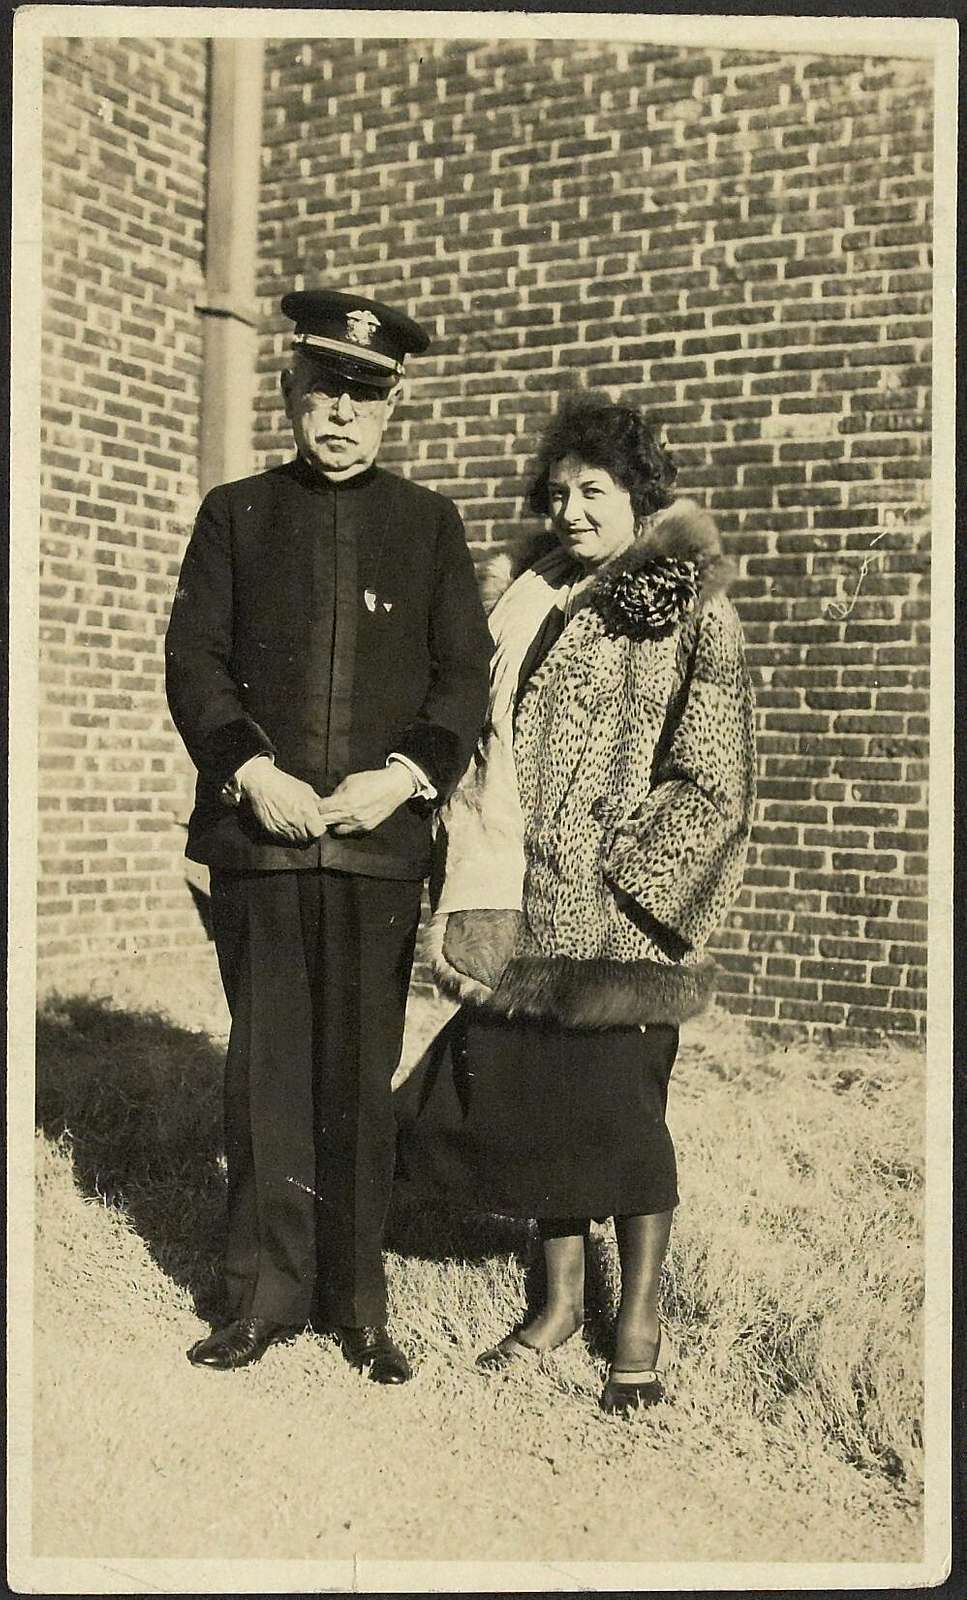 Sousa and Marjorie Moody